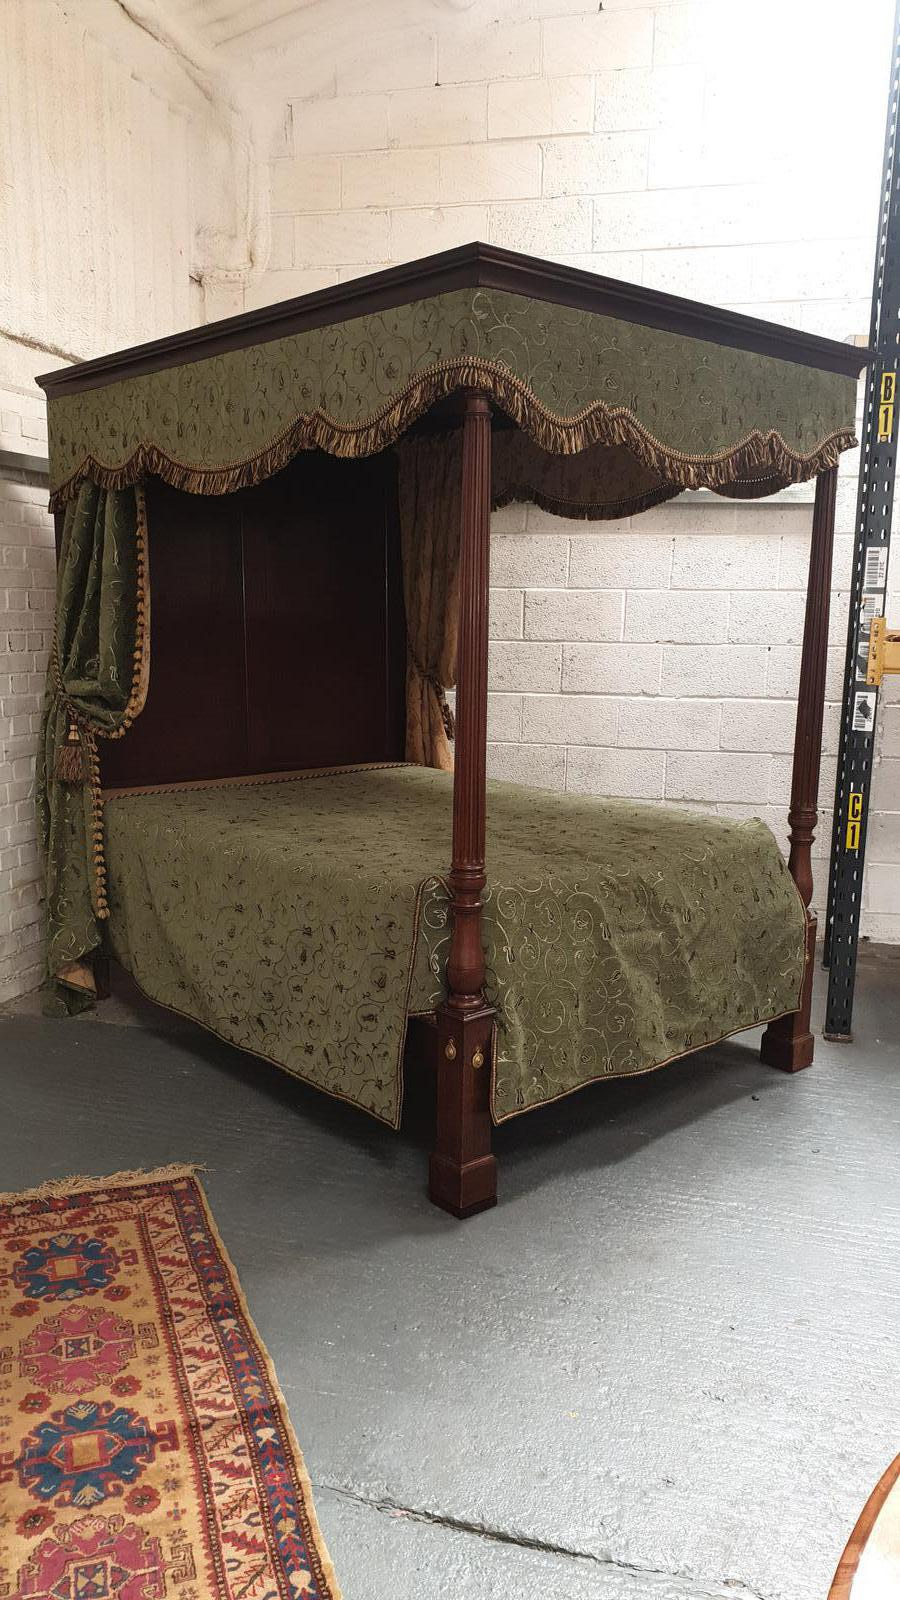 Superb William IV Mahogany Four Poster King-size Bed (1 of 1)